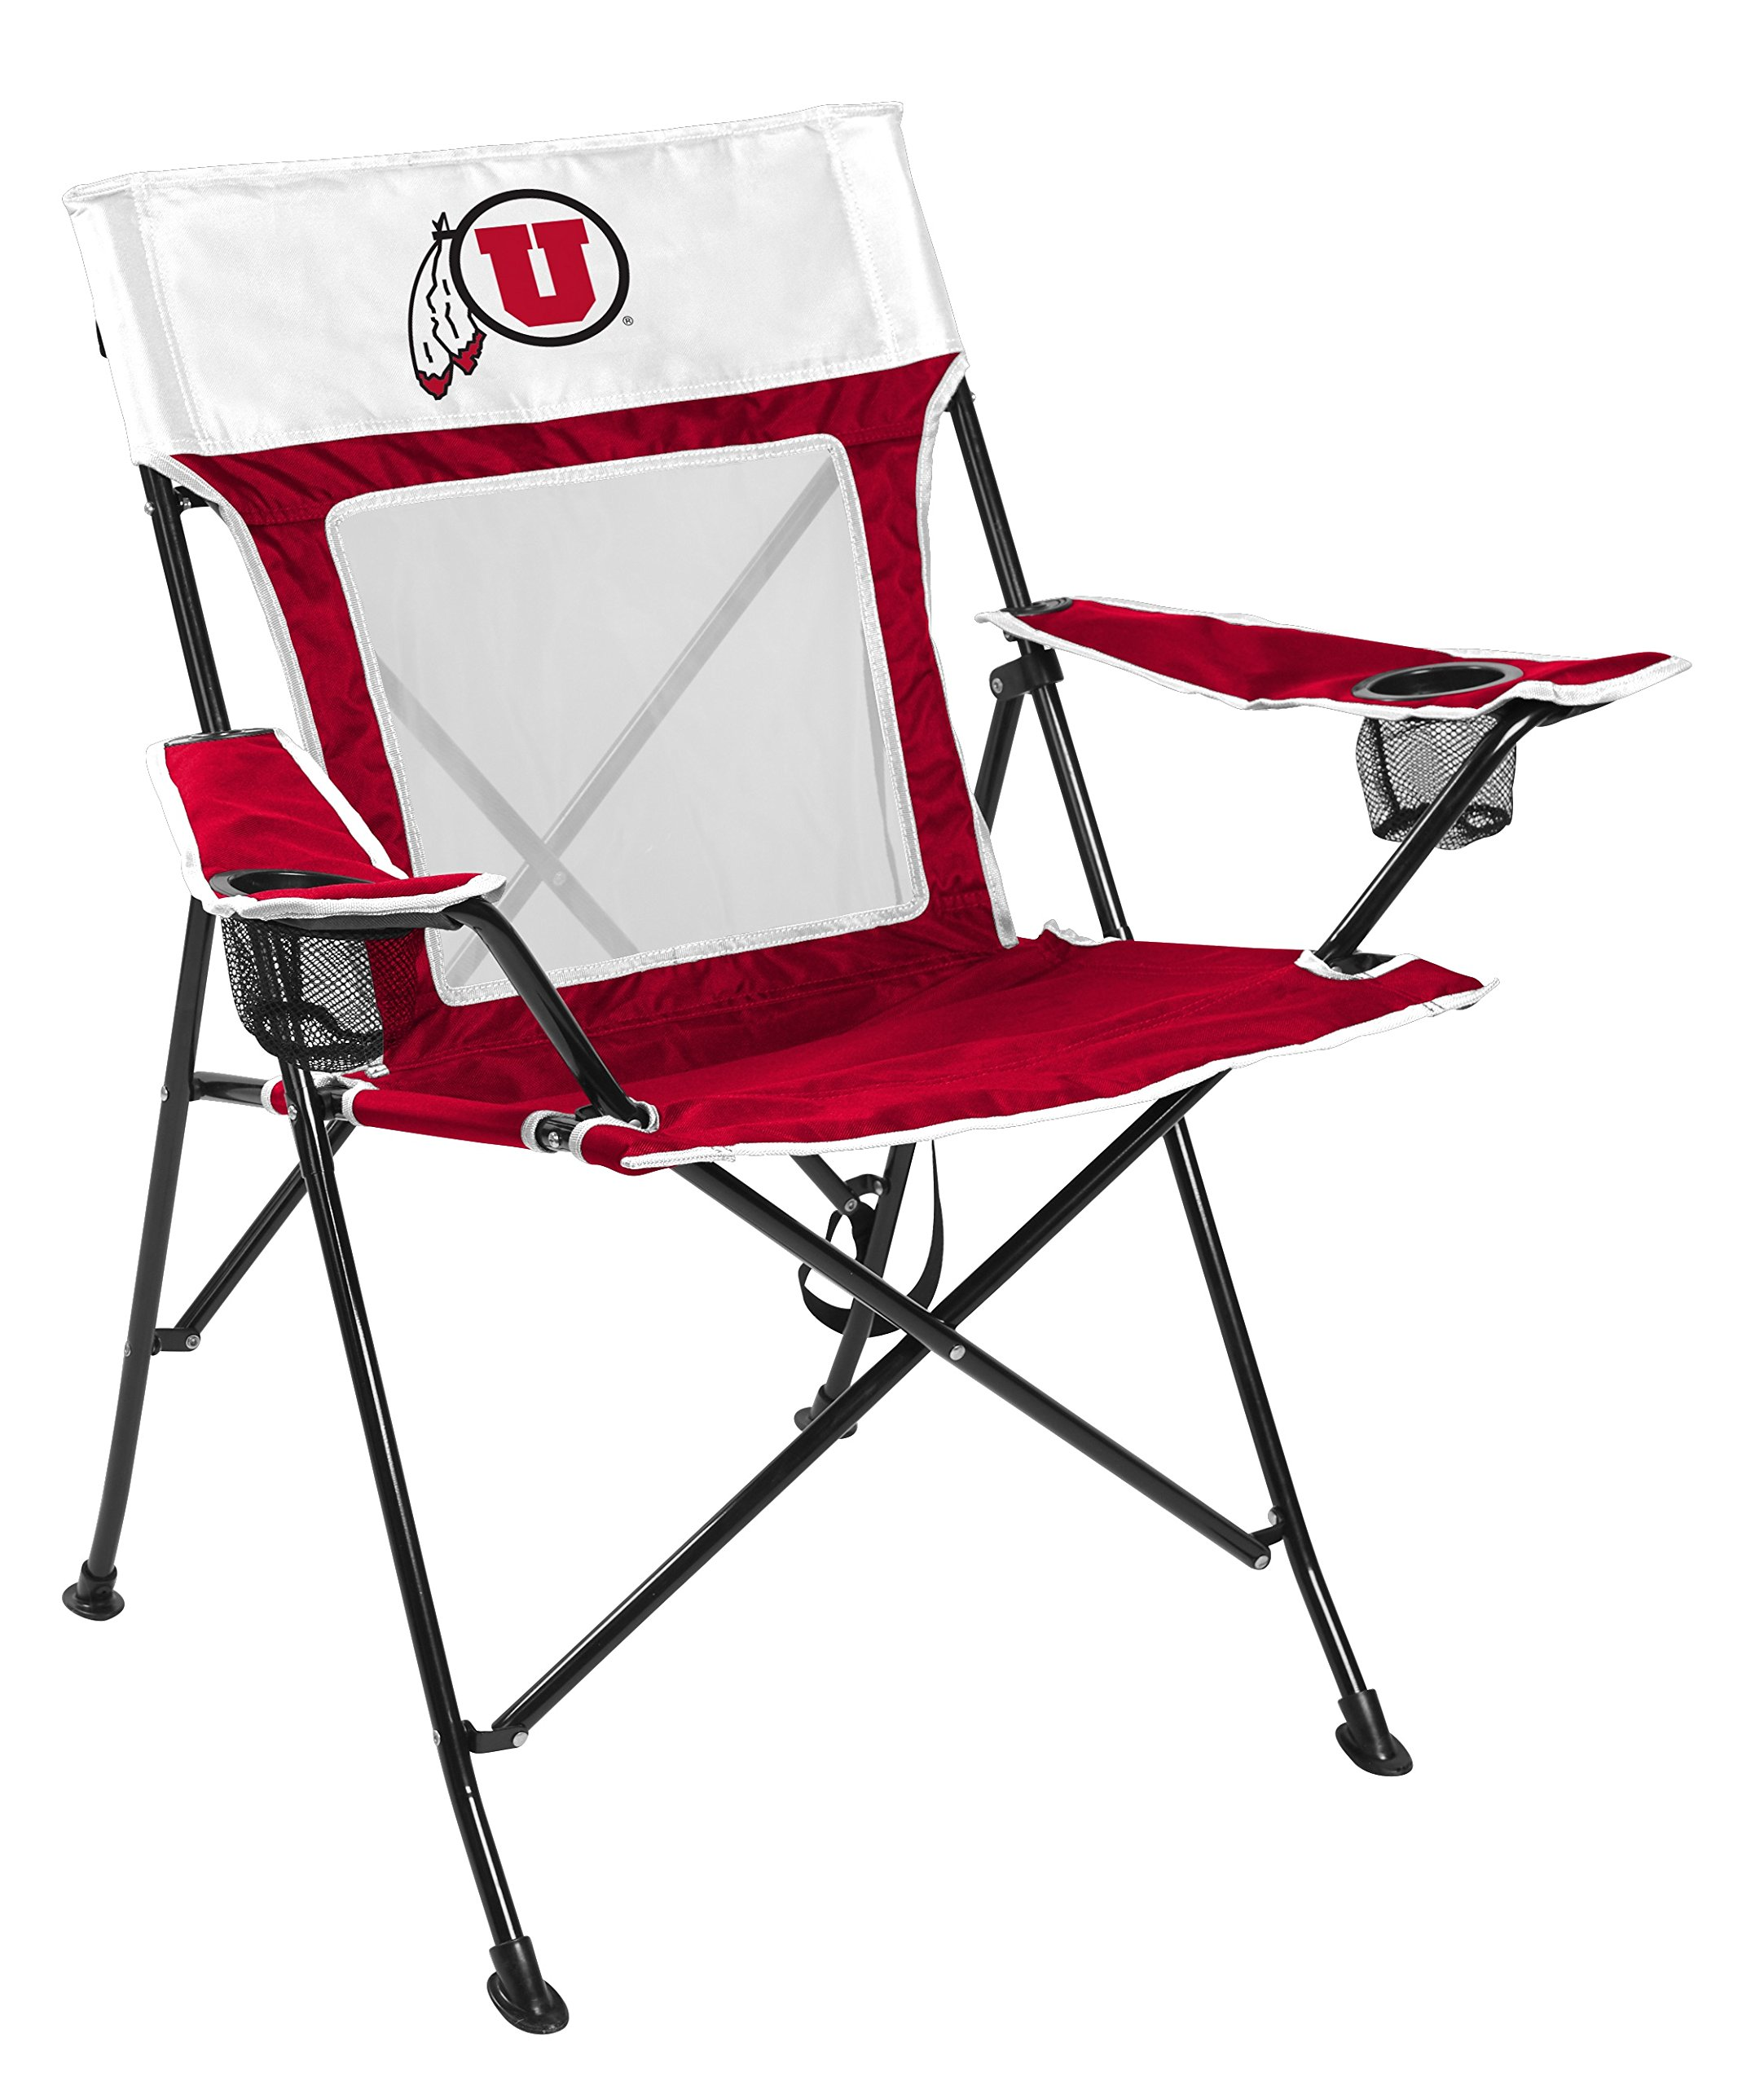 Rawlings NCAA Game Changer Large Folding Tailgating and Camping Chair, with Carrying Case (ALL TEAM OPTIONS), University of Utah by Rawlings